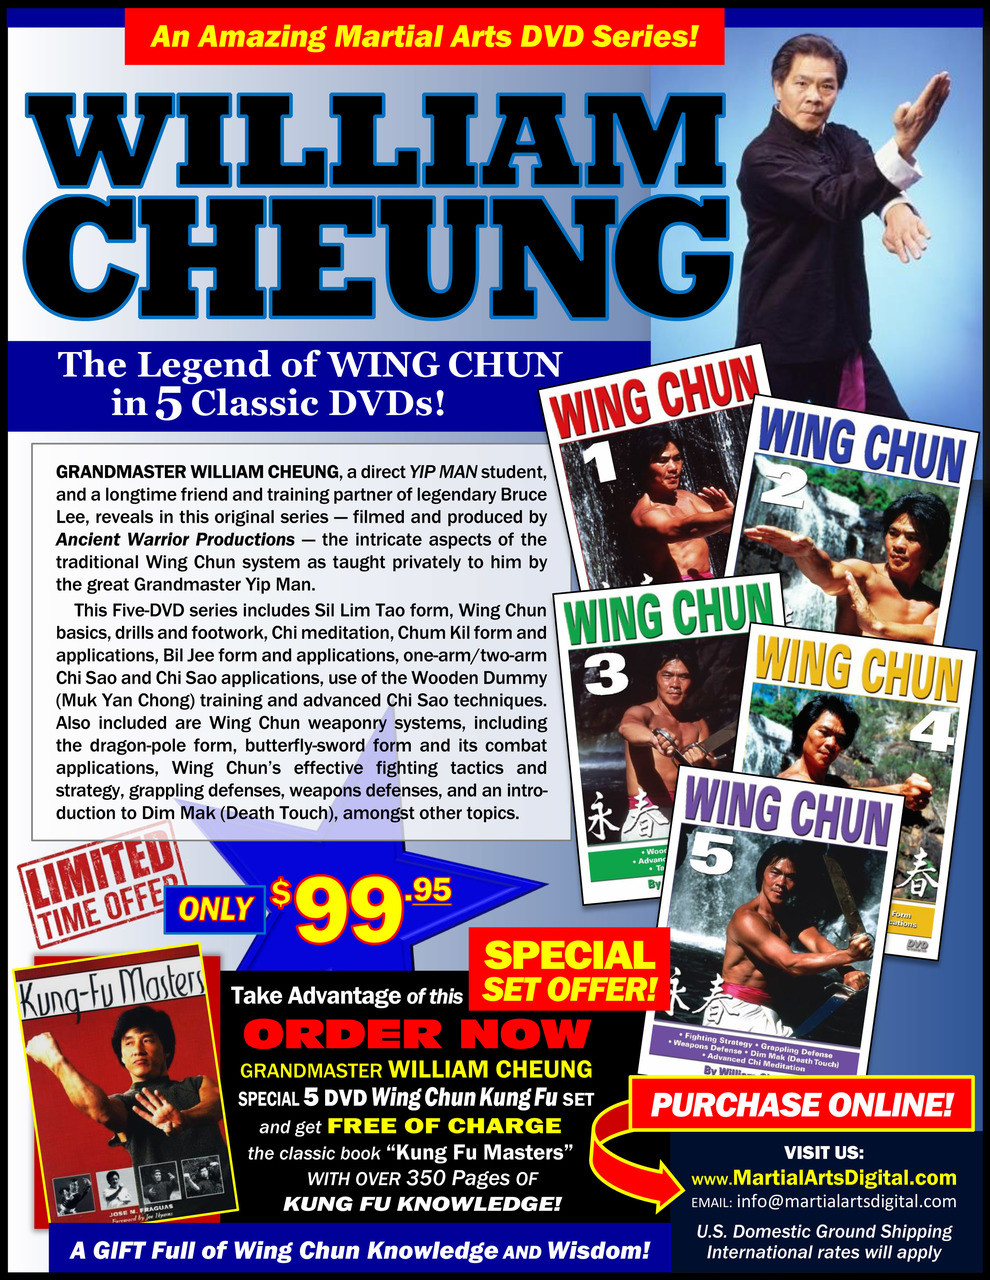 WING CHUN KUNG FU SPECIAL 5 DVD SET